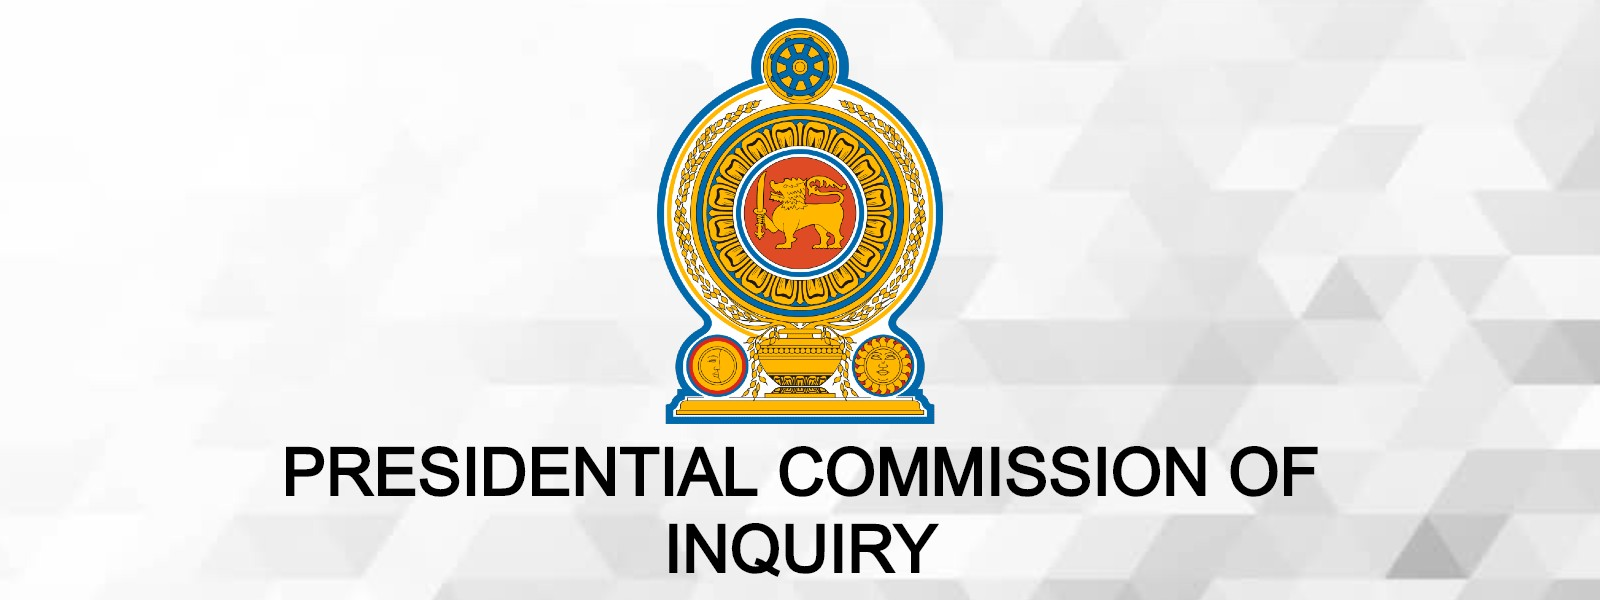 Top brass from Sri Lanka Police testify at PCoI on April 21st, 2019 attacks